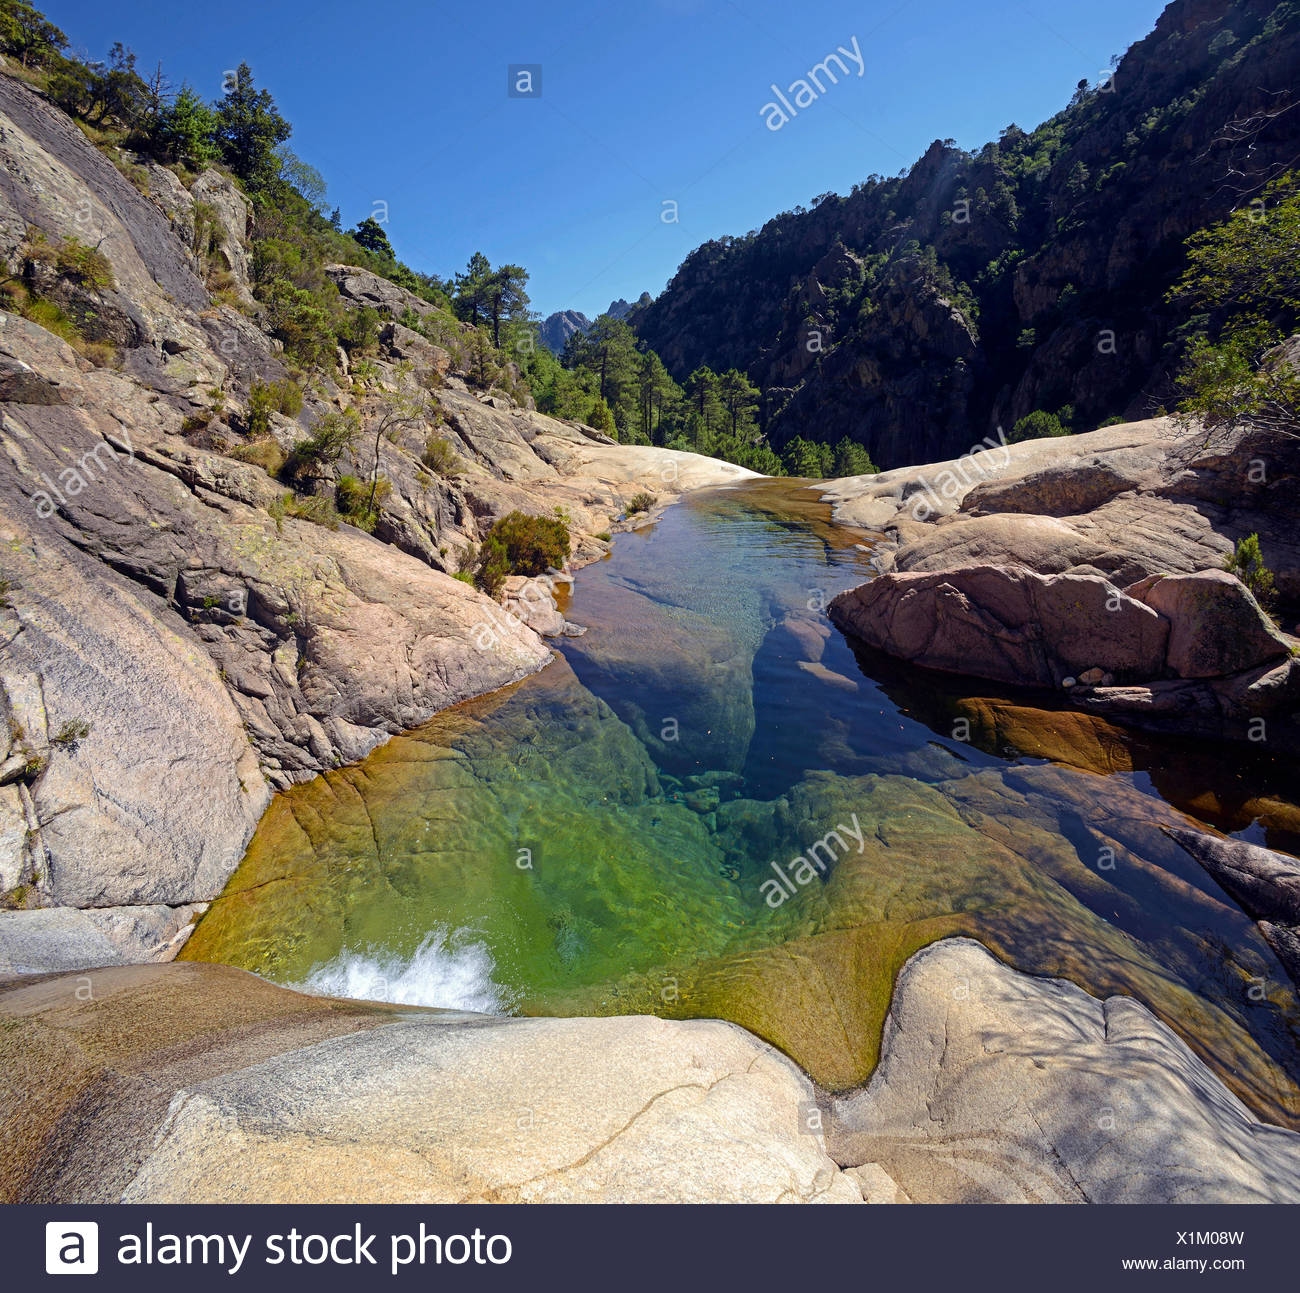 the canyon of Purcaraccia in Bavella mountain, France, Corsica Stock Photo